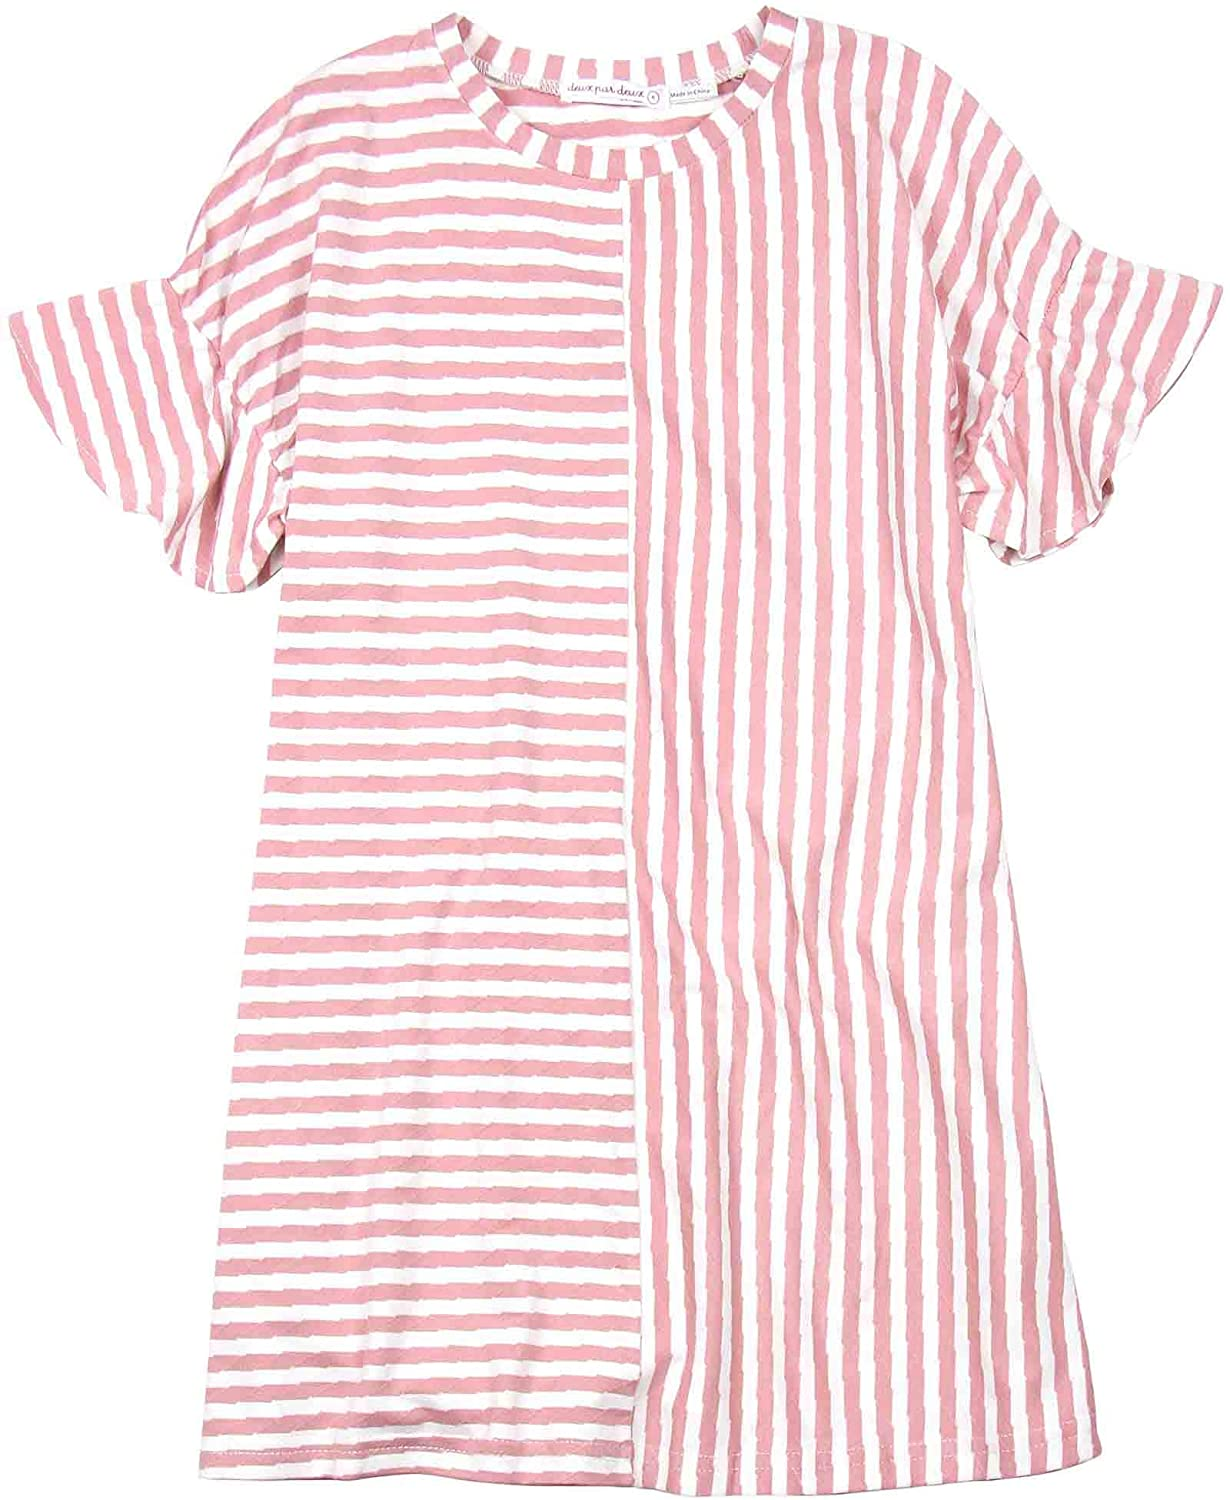 Deux par Deux Girls' Striped Dress in Pink Unicorn Hype, Sizes 5-12